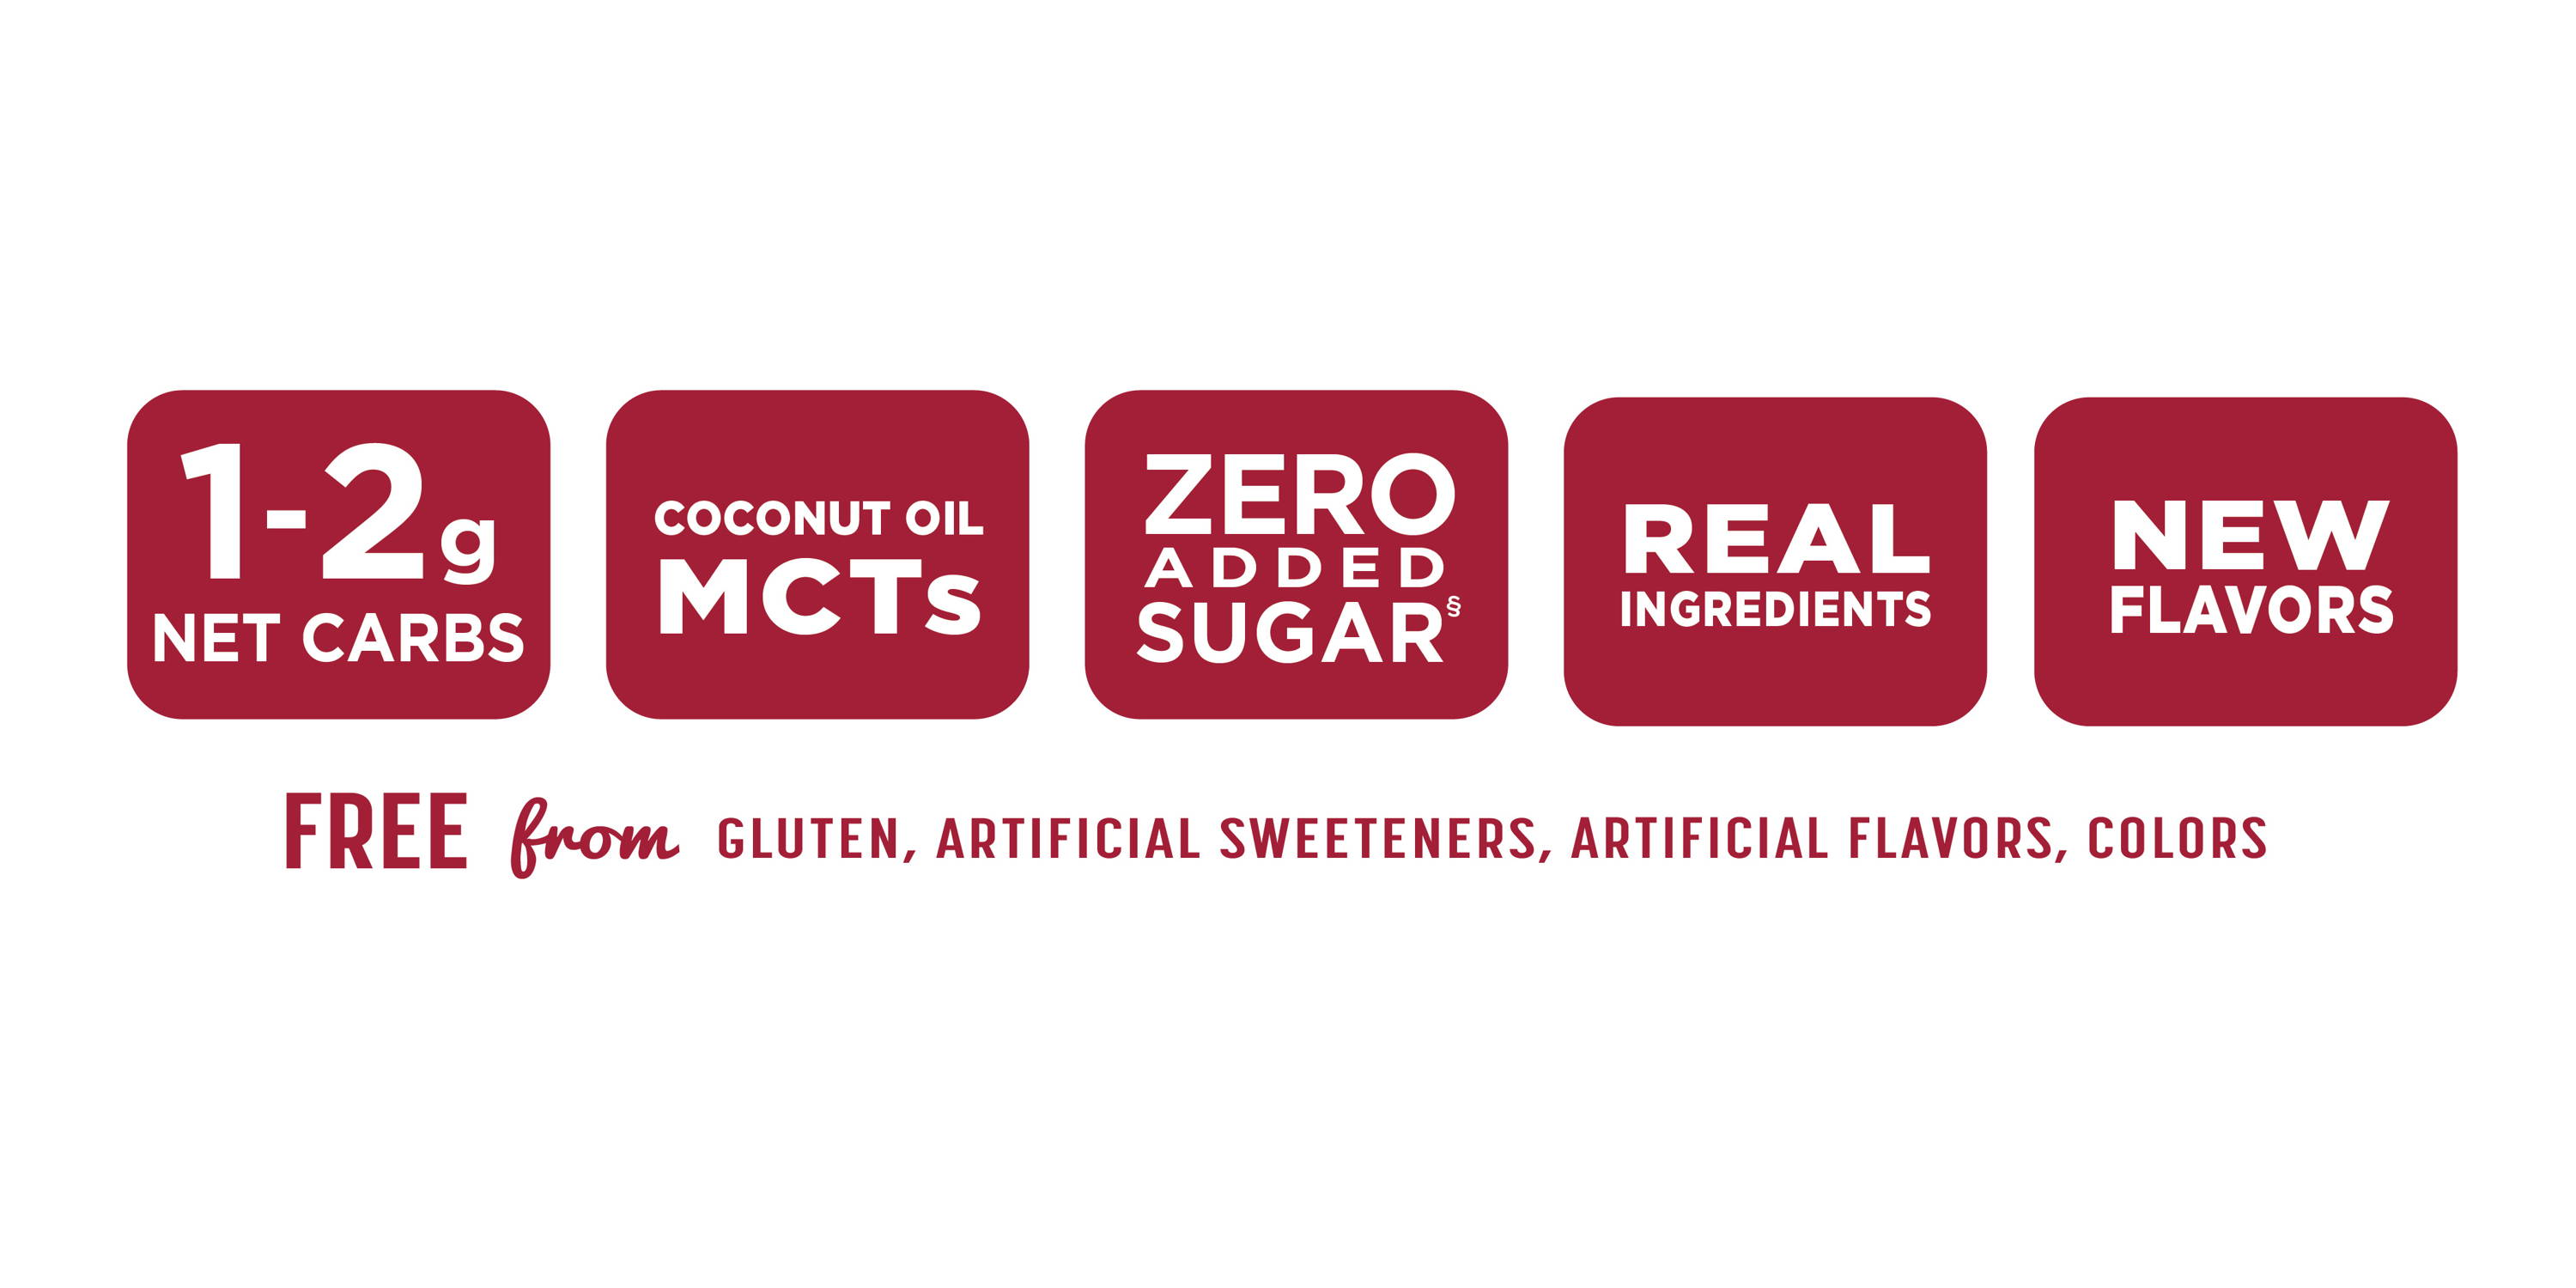 1-2g net carbs, coconut oil MCTs, zero added sugar, real ingredients, new flavors- free from gluten, artificial sweeteners, colors